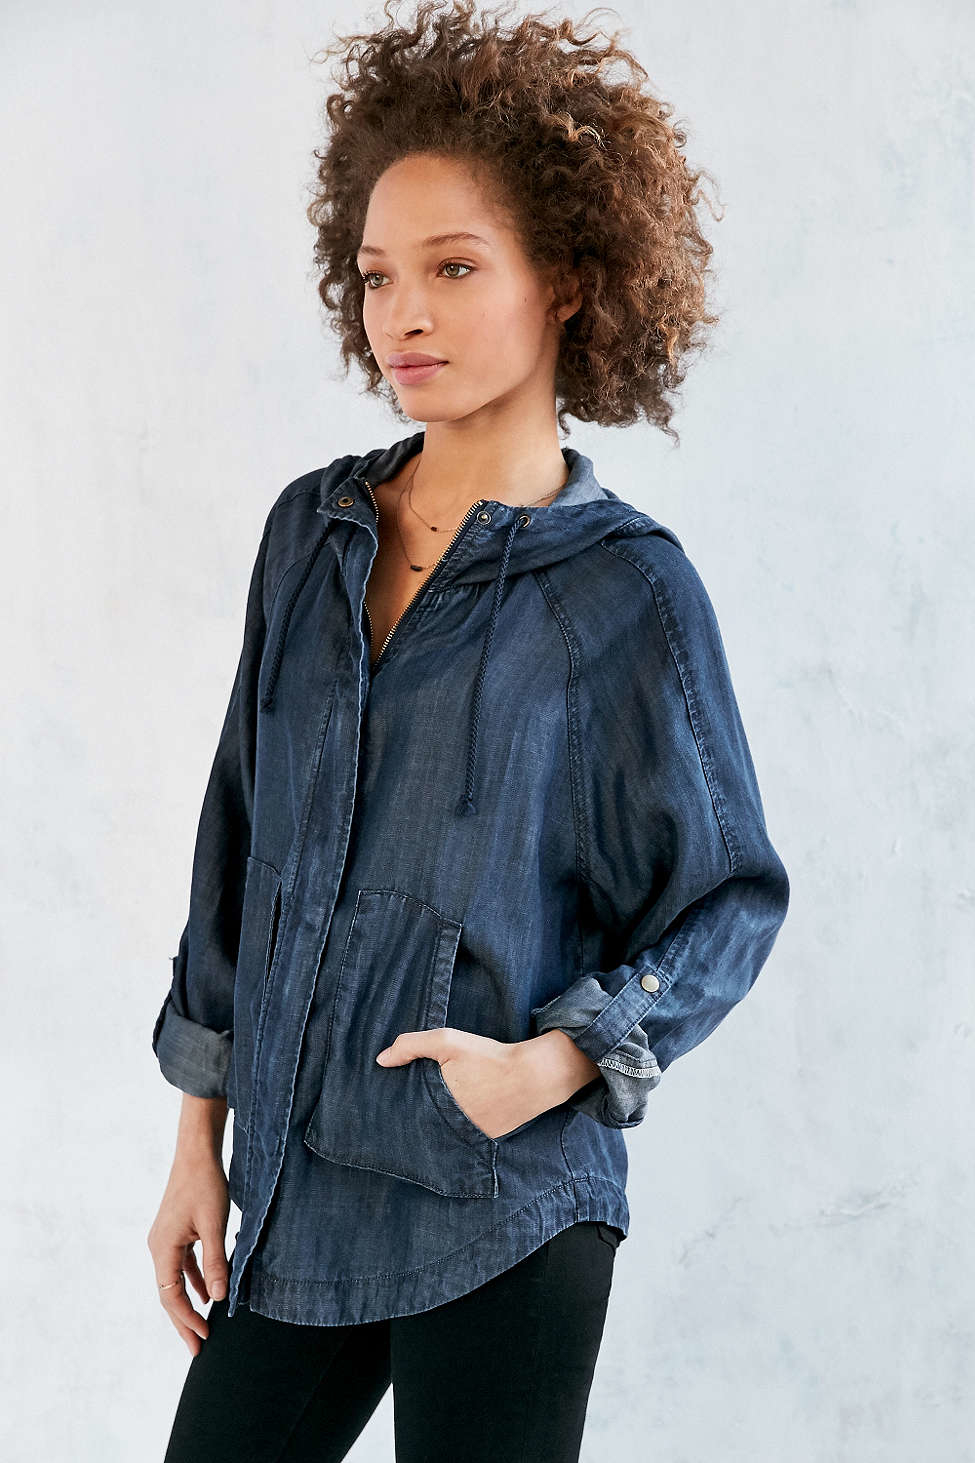 This BDG Shrunken Denim Trucker Jacket ($49, originally $69) feels very vintage-inspired, and the slightly cropped hemline gives a more feminine vibe.